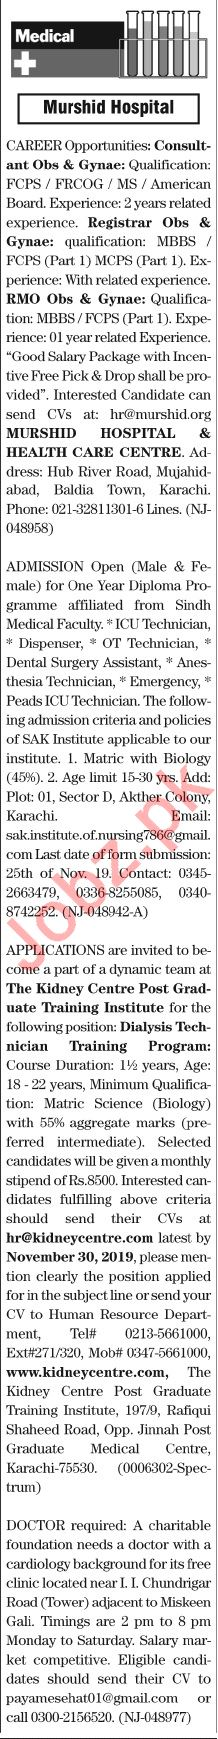 The News Sunday Classified Ads 17th Nov 2019 Medical Staff